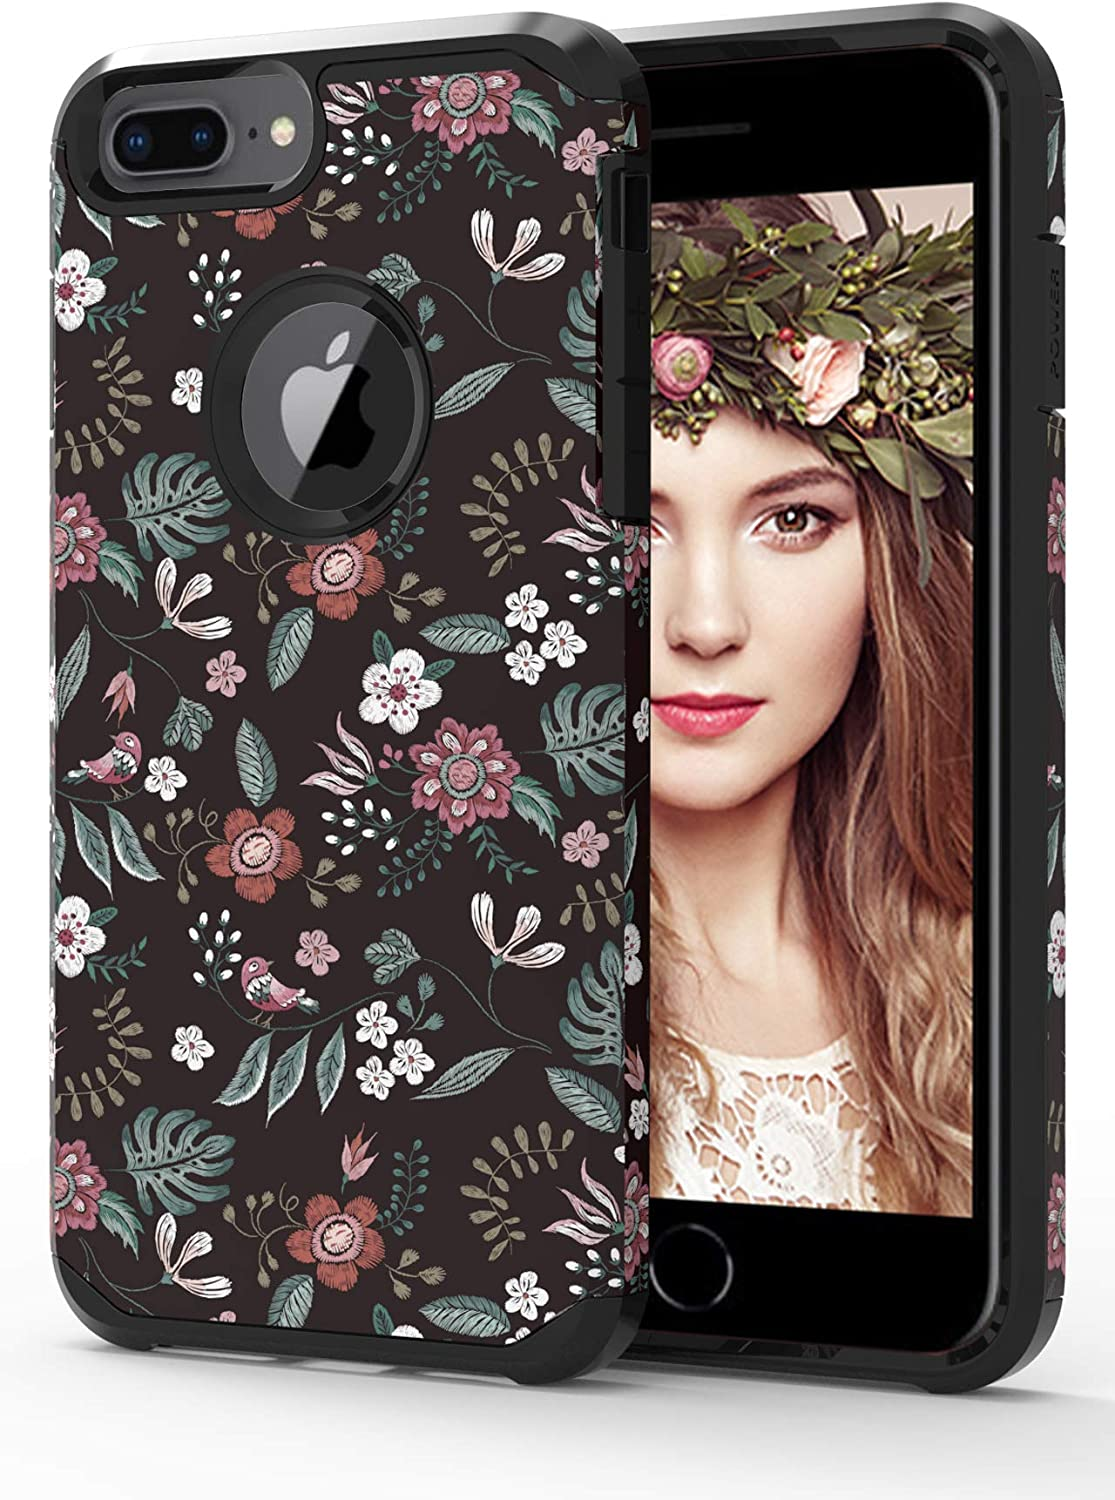 ShinyMax iPhone 7 Plus/8 Plus Case with Floral Design,iPhone 6 Plus/6s Plus Case, Hybrid Dual Layer Armor Protective Cover Sturdy Anti-Scratch Shockproof Cute Case for Women and Girls-Flowers/Black